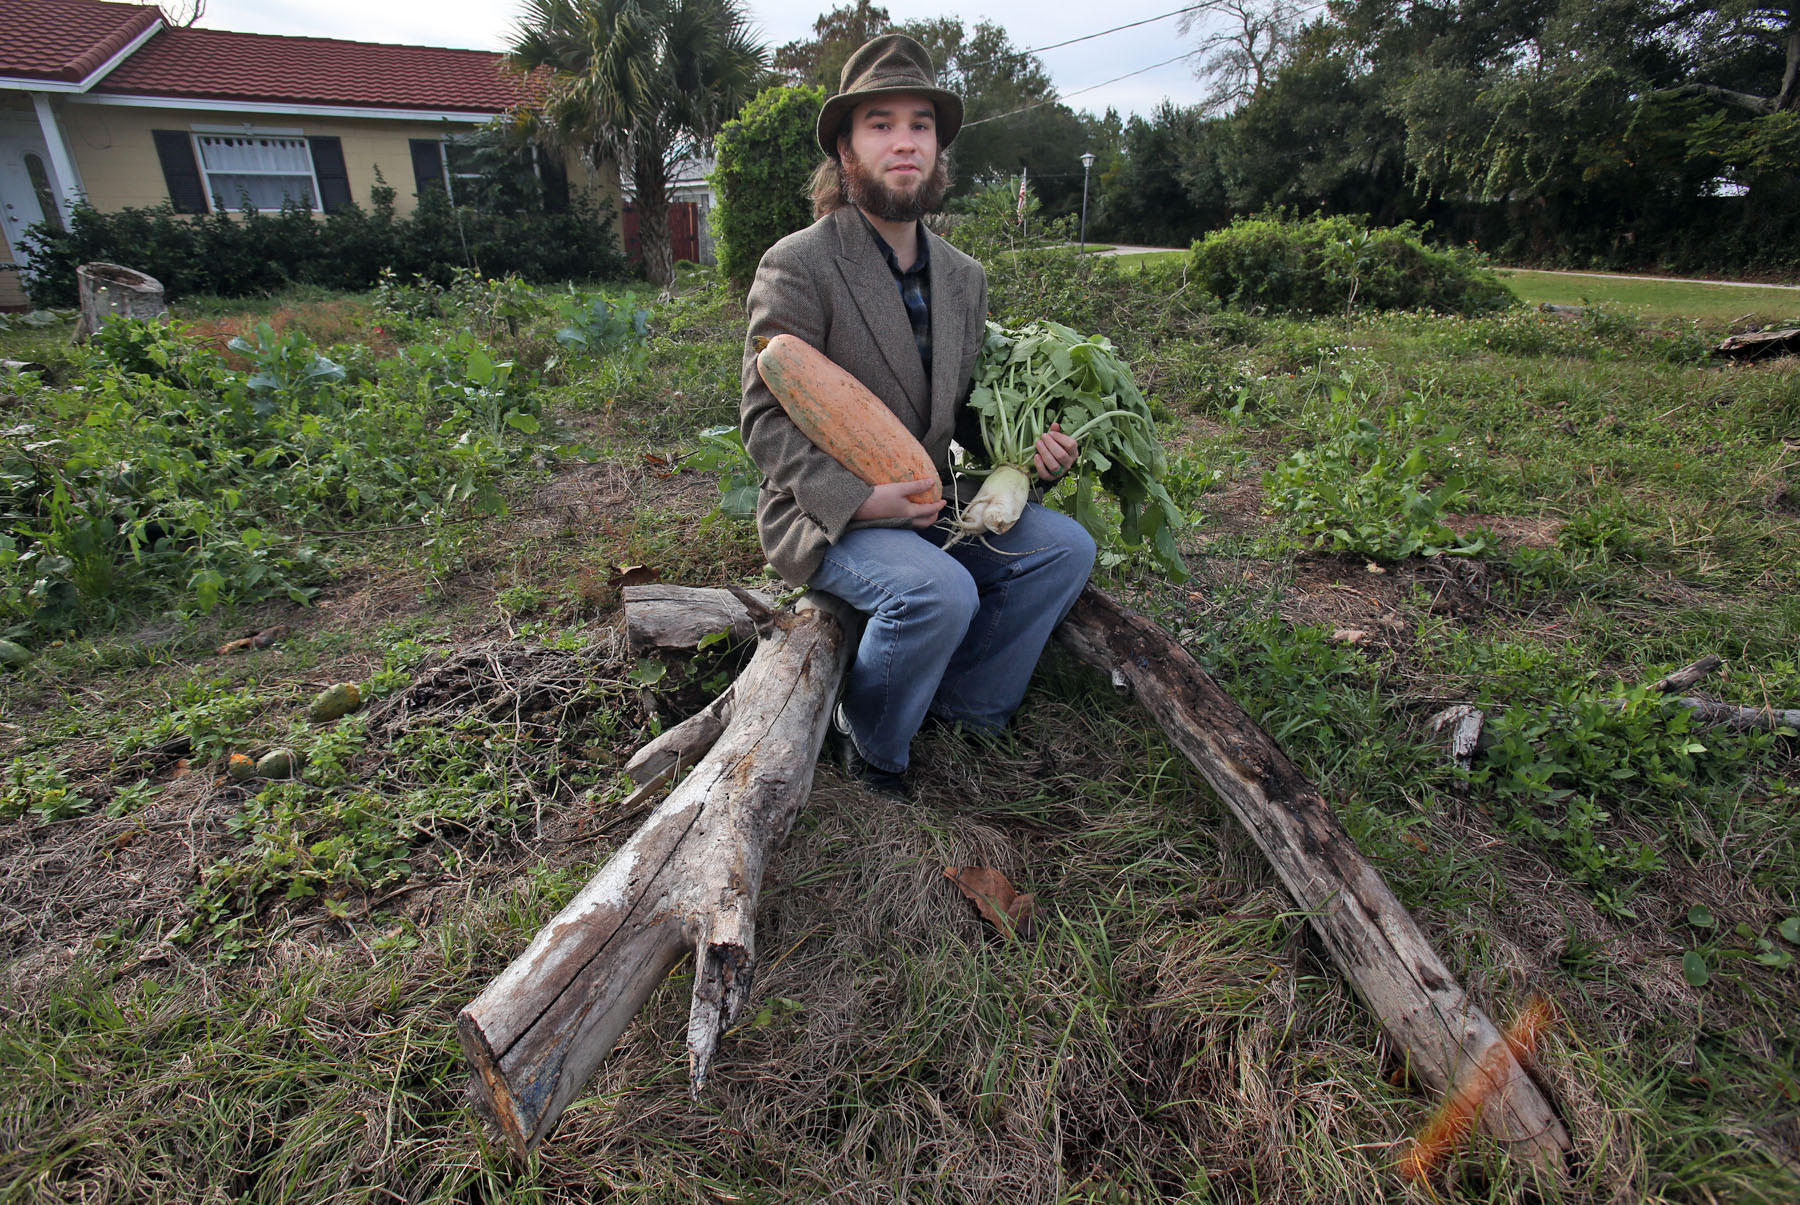 Sean Law, 32, holds a squash and a radish in his Longwood frontyard on January 3, 2014.